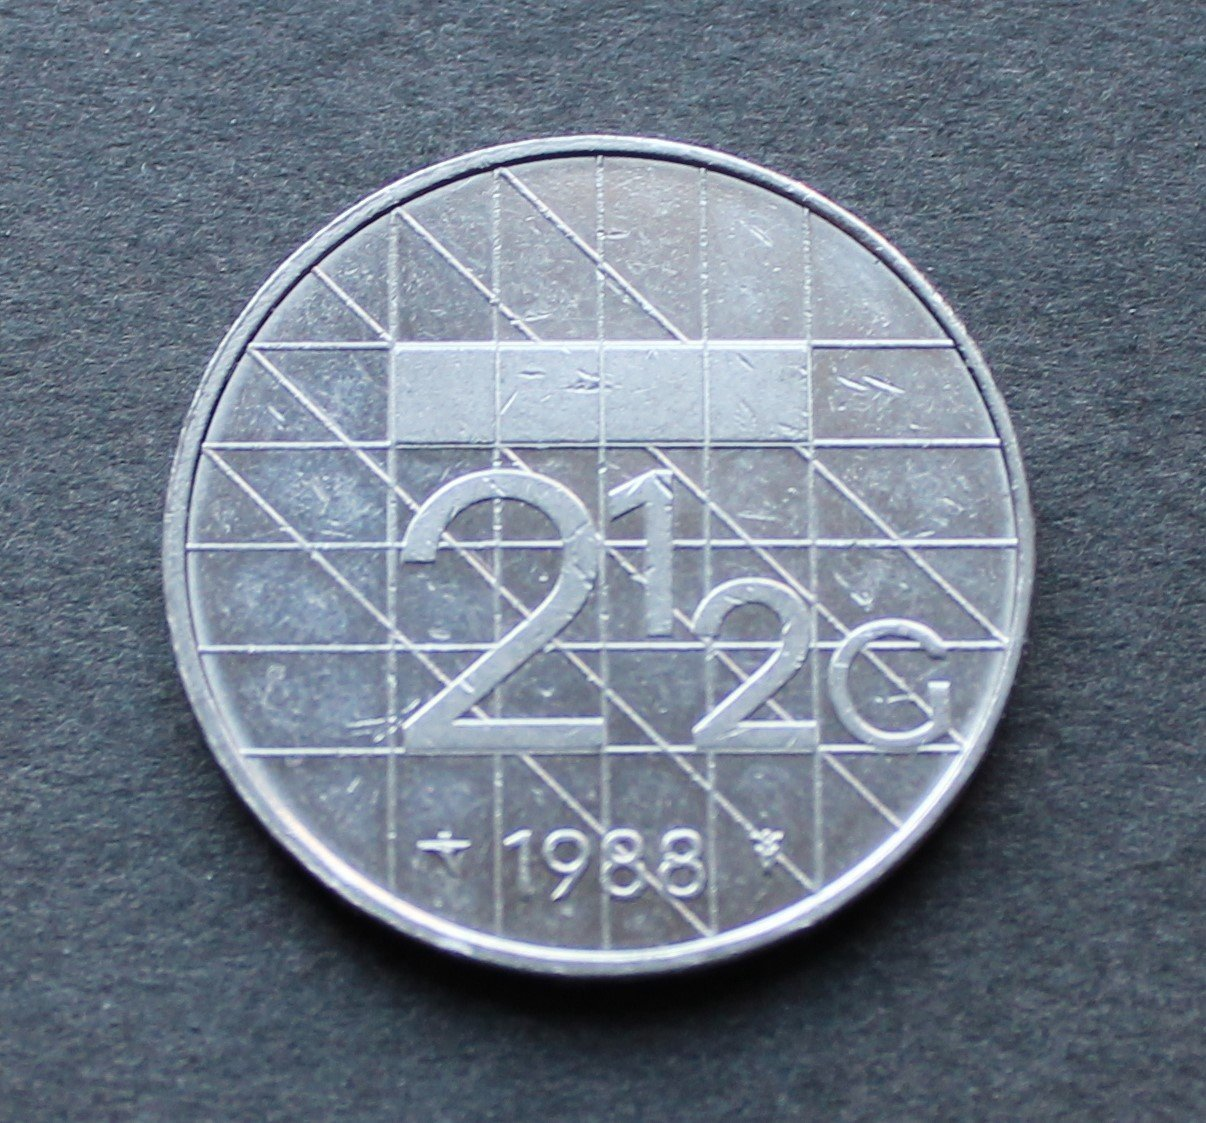 NEDERLÄNDERNA - 2½ Gulden 1988 - KM 206 - Nickel - Holland